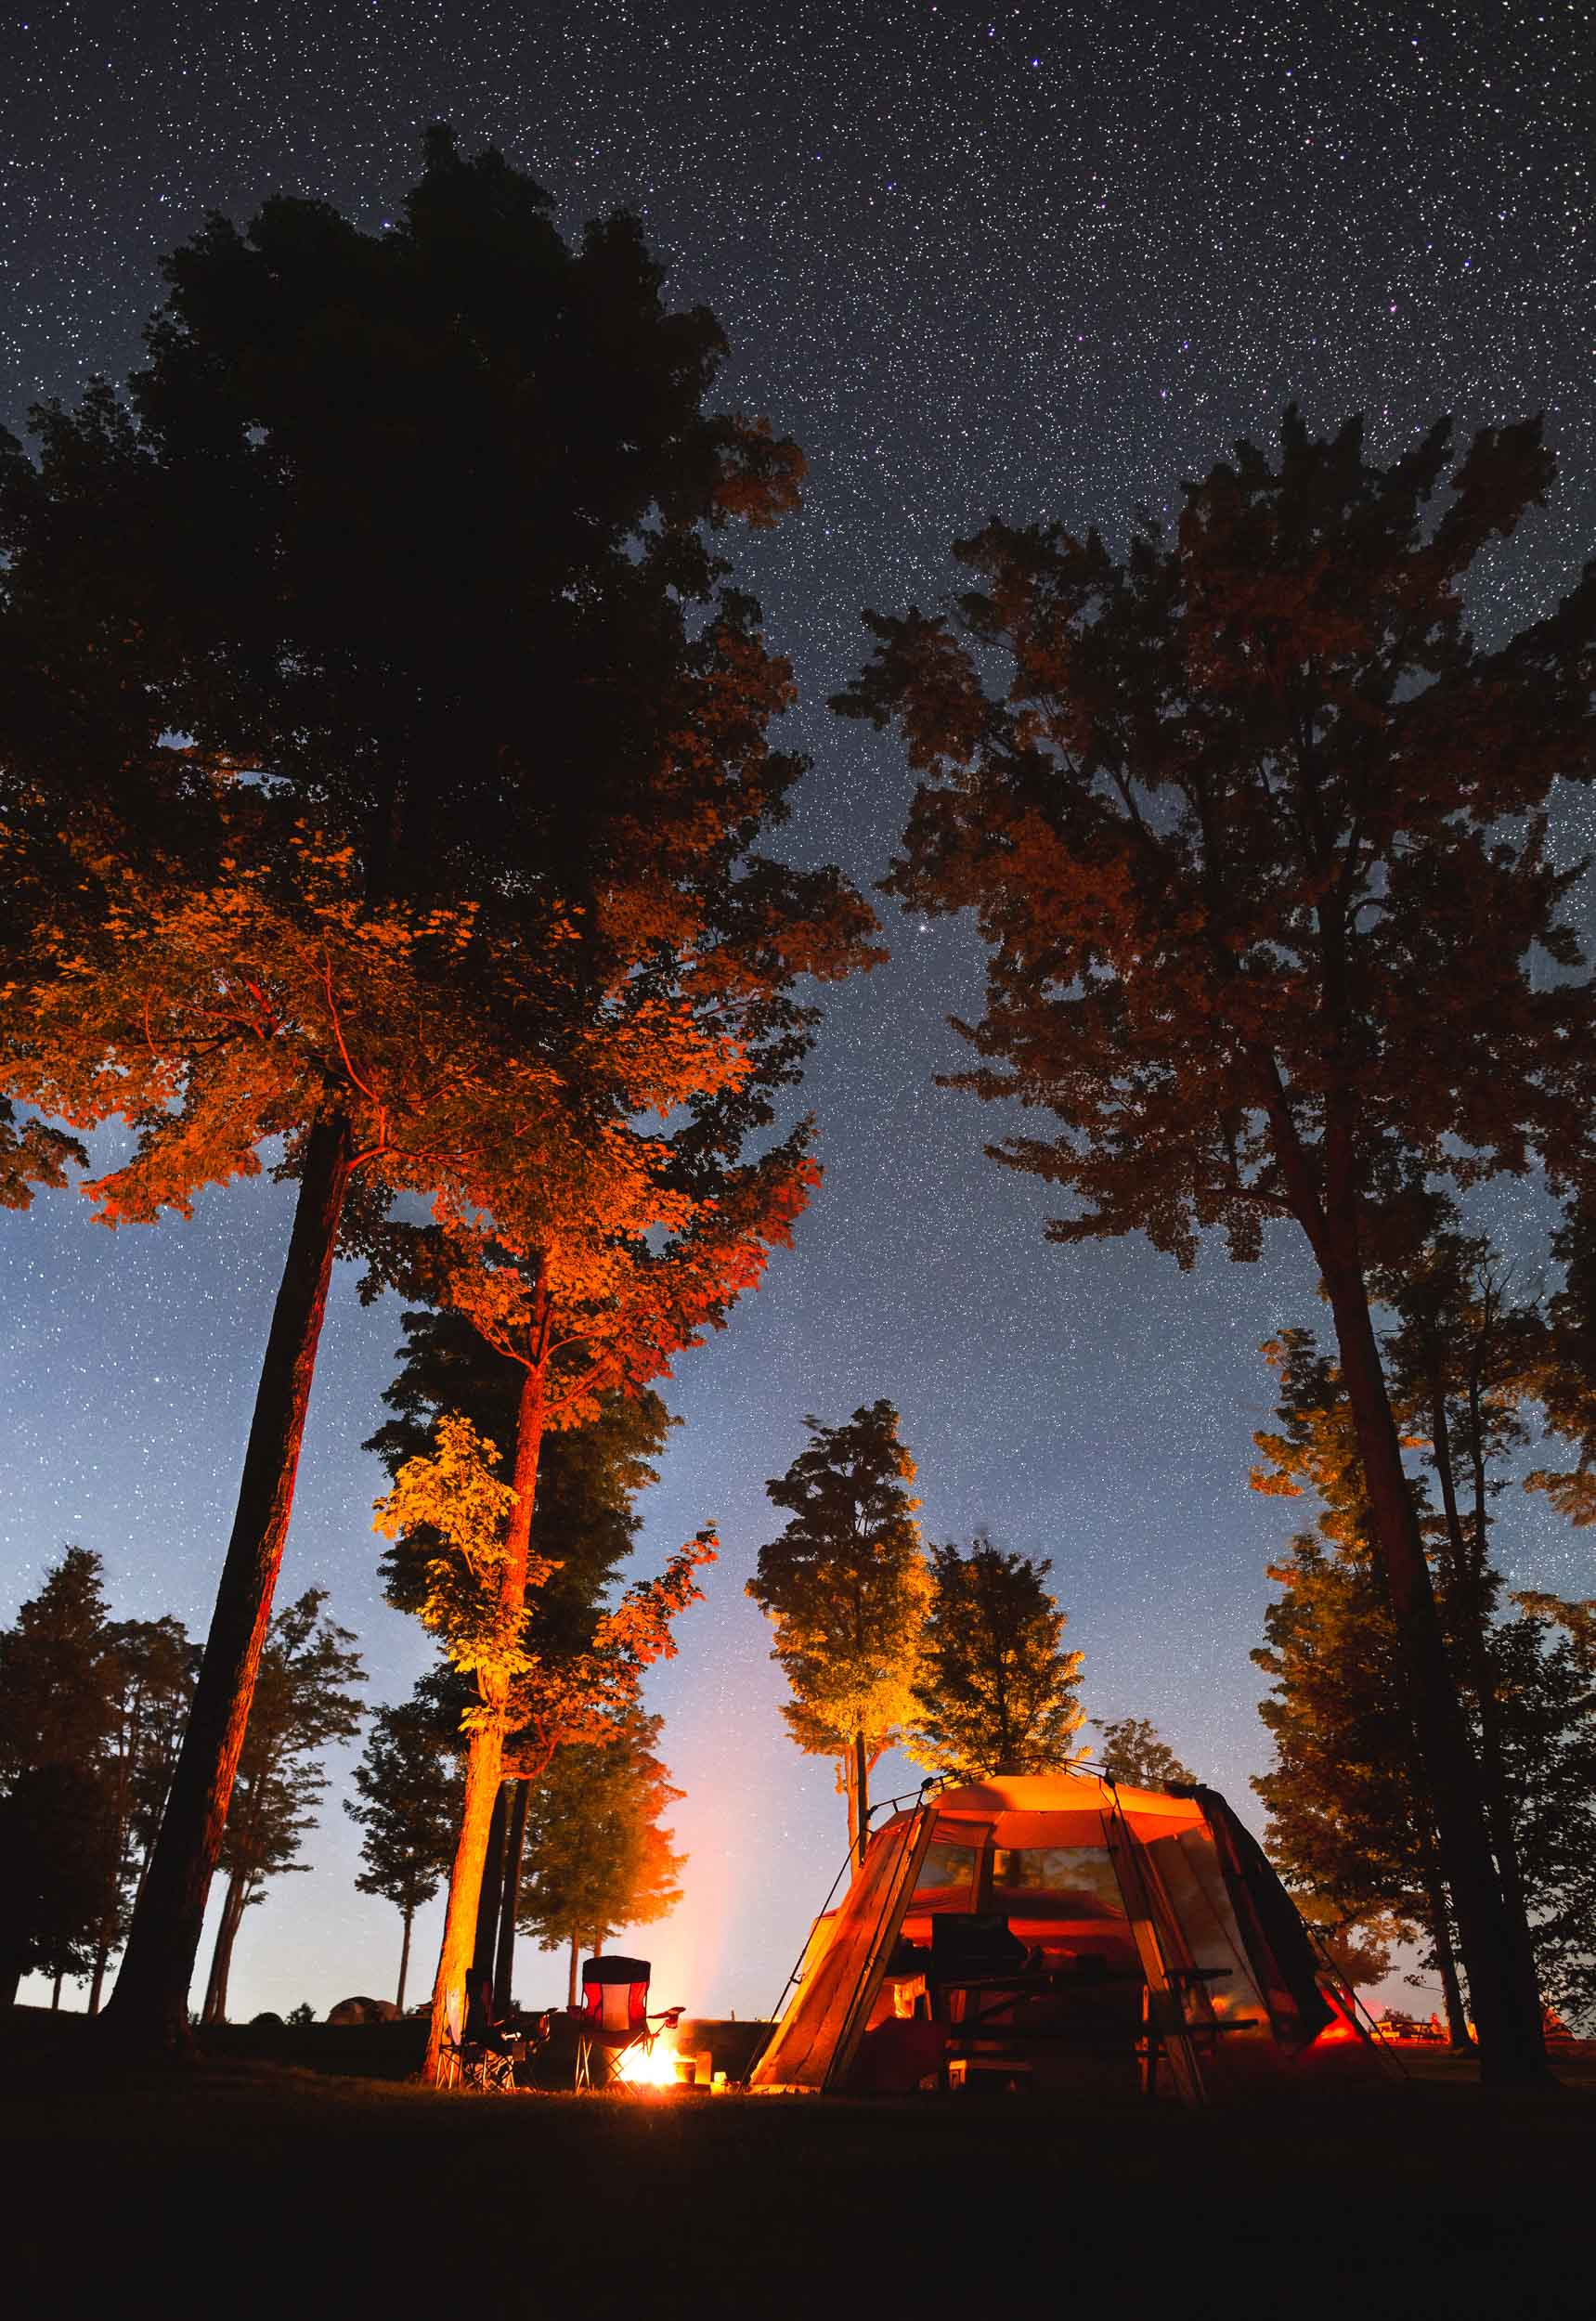 A family camps under a star-dotted sky at Cherry Springs State Park in northern central Pennsylvania, an official Dark Sky site where stars, planets and the Milky Way are easily visible. It is one of the few such places on the East Coast.